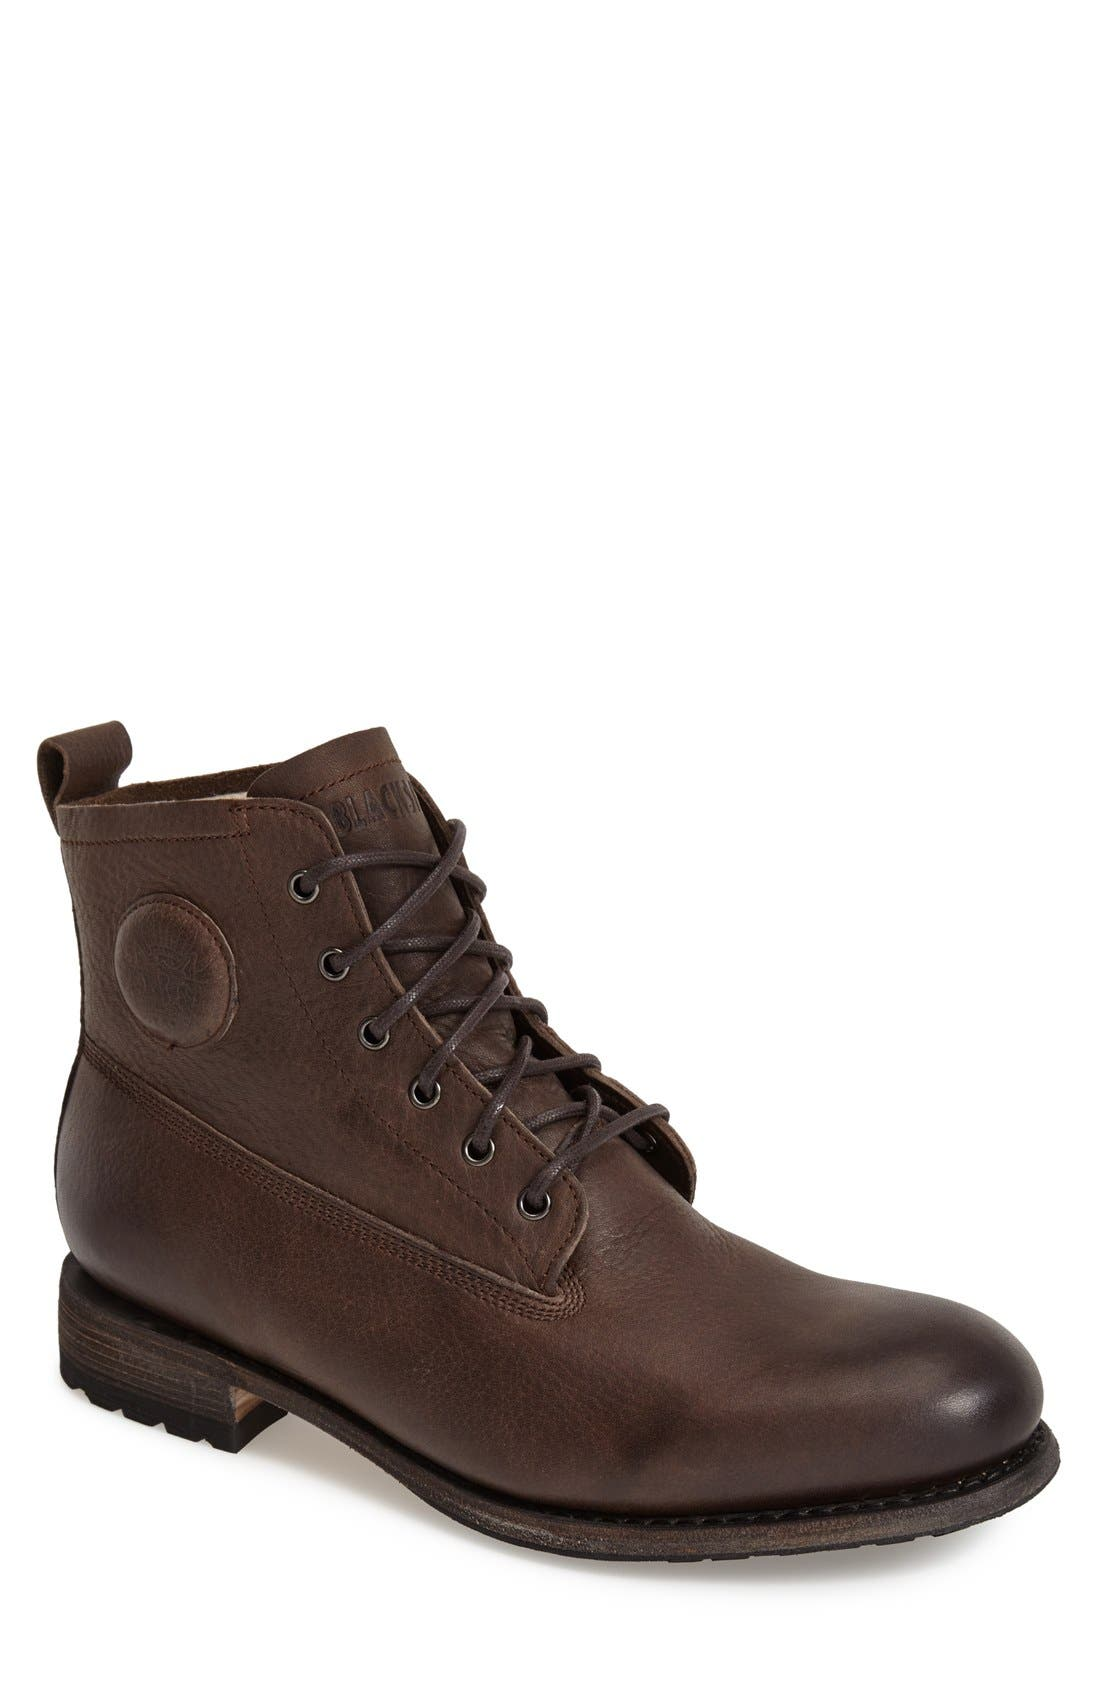 Alternate Image 1 Selected - Blackstone 'Gull' Plain Toe Boot (Men)